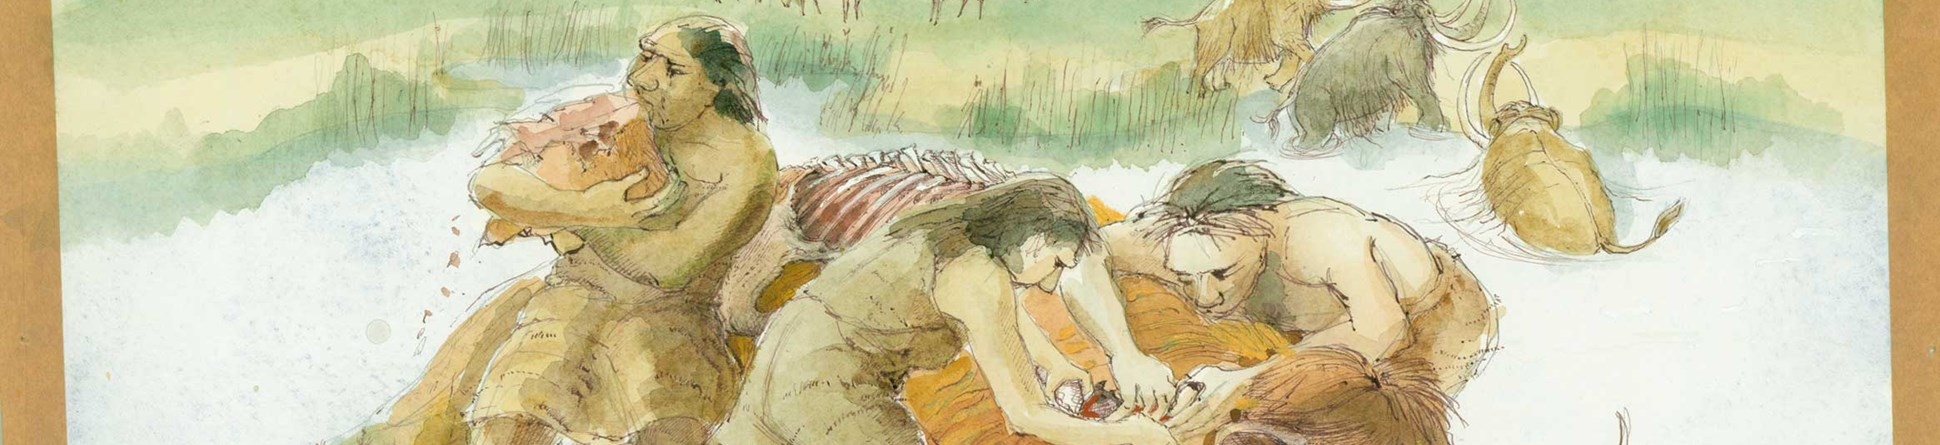 A reconstruction drawing of a group of Neanderthals butchering a mammoth